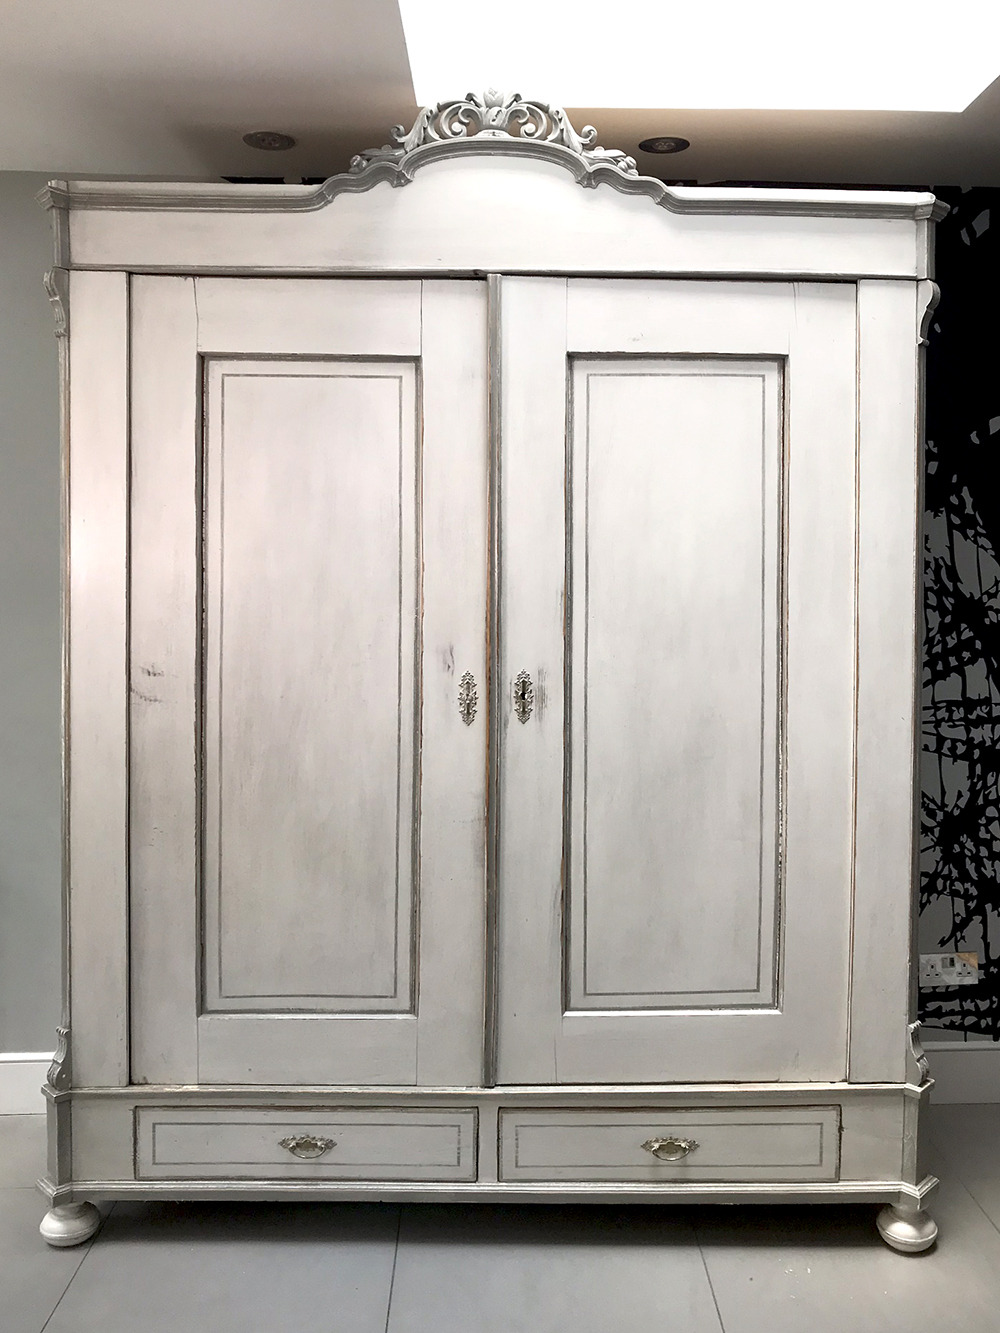 French armoire front view